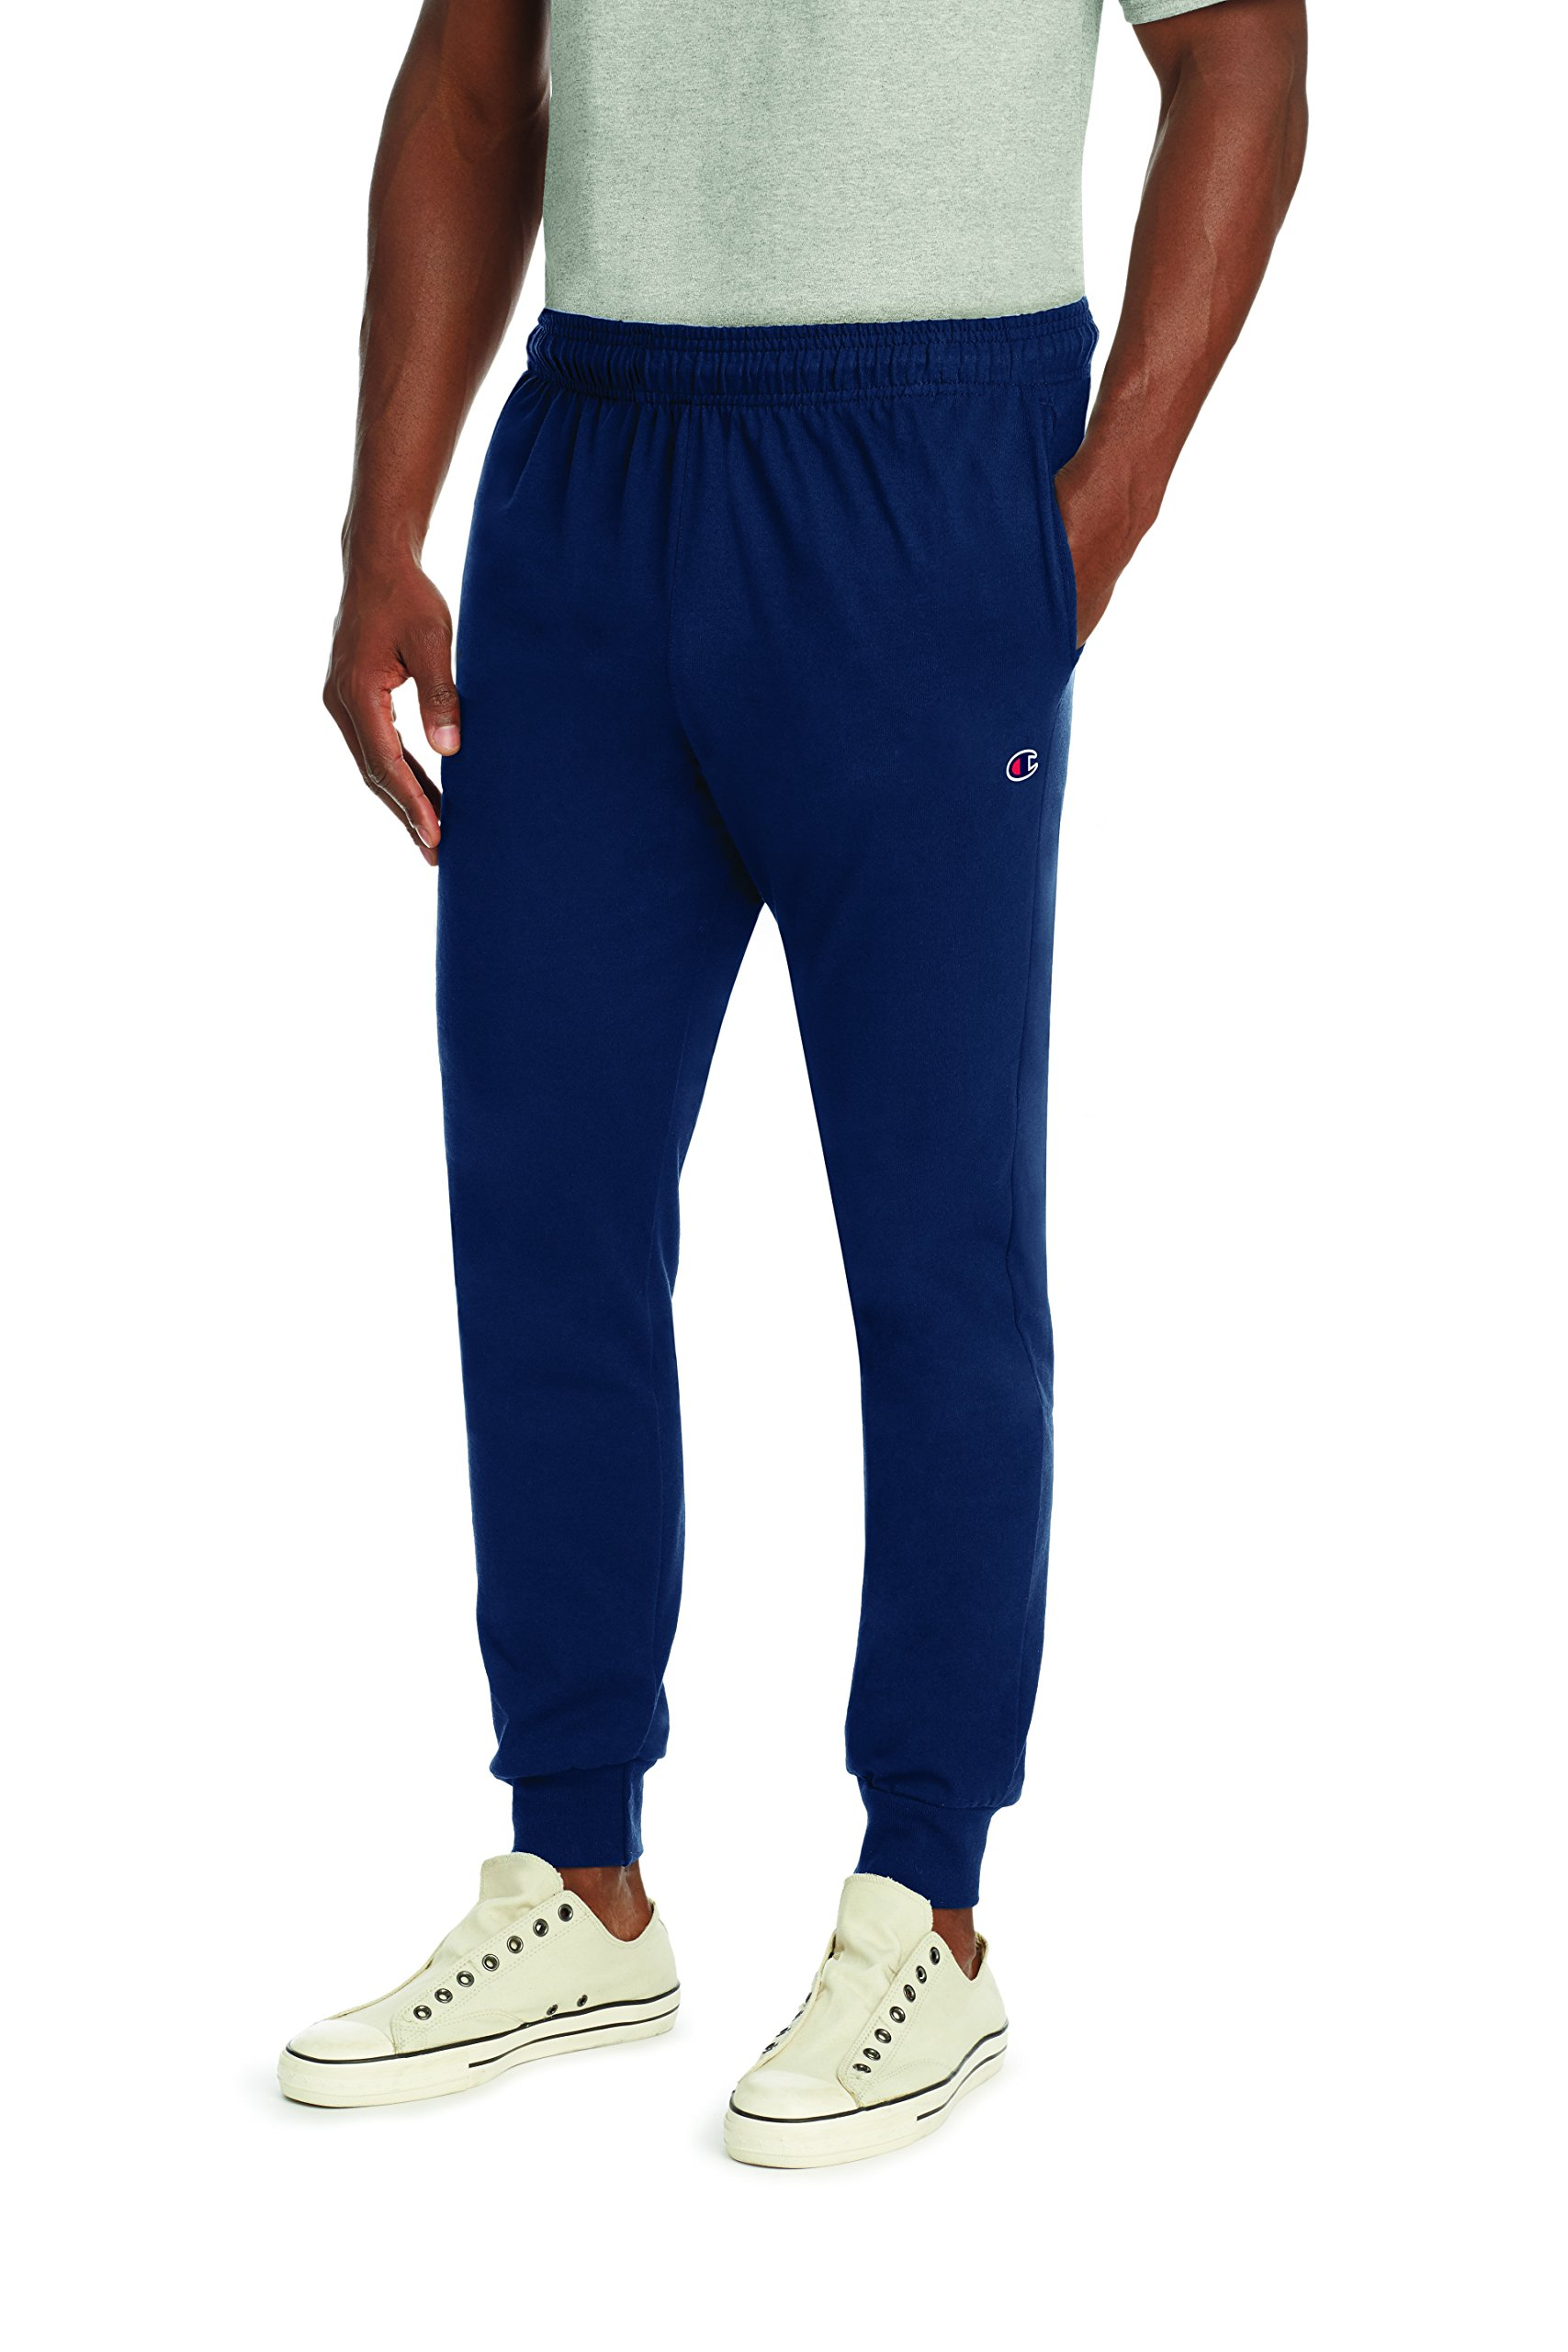 Champion Men's Jersey Jogger, Navy, M by Champion